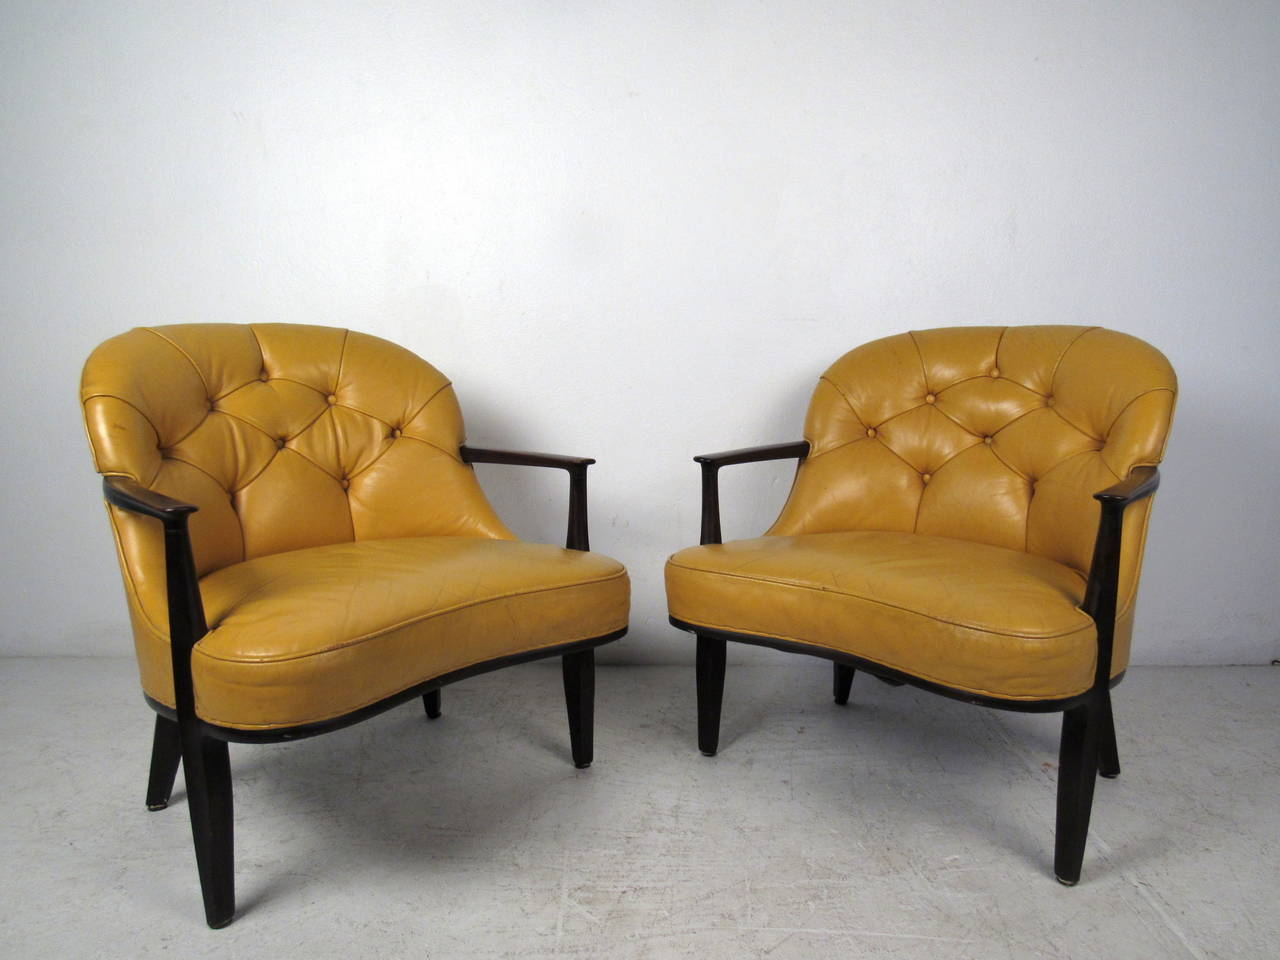 tufted yellow chair white arm chairs pair of by dunbar for sale at 1stdibs